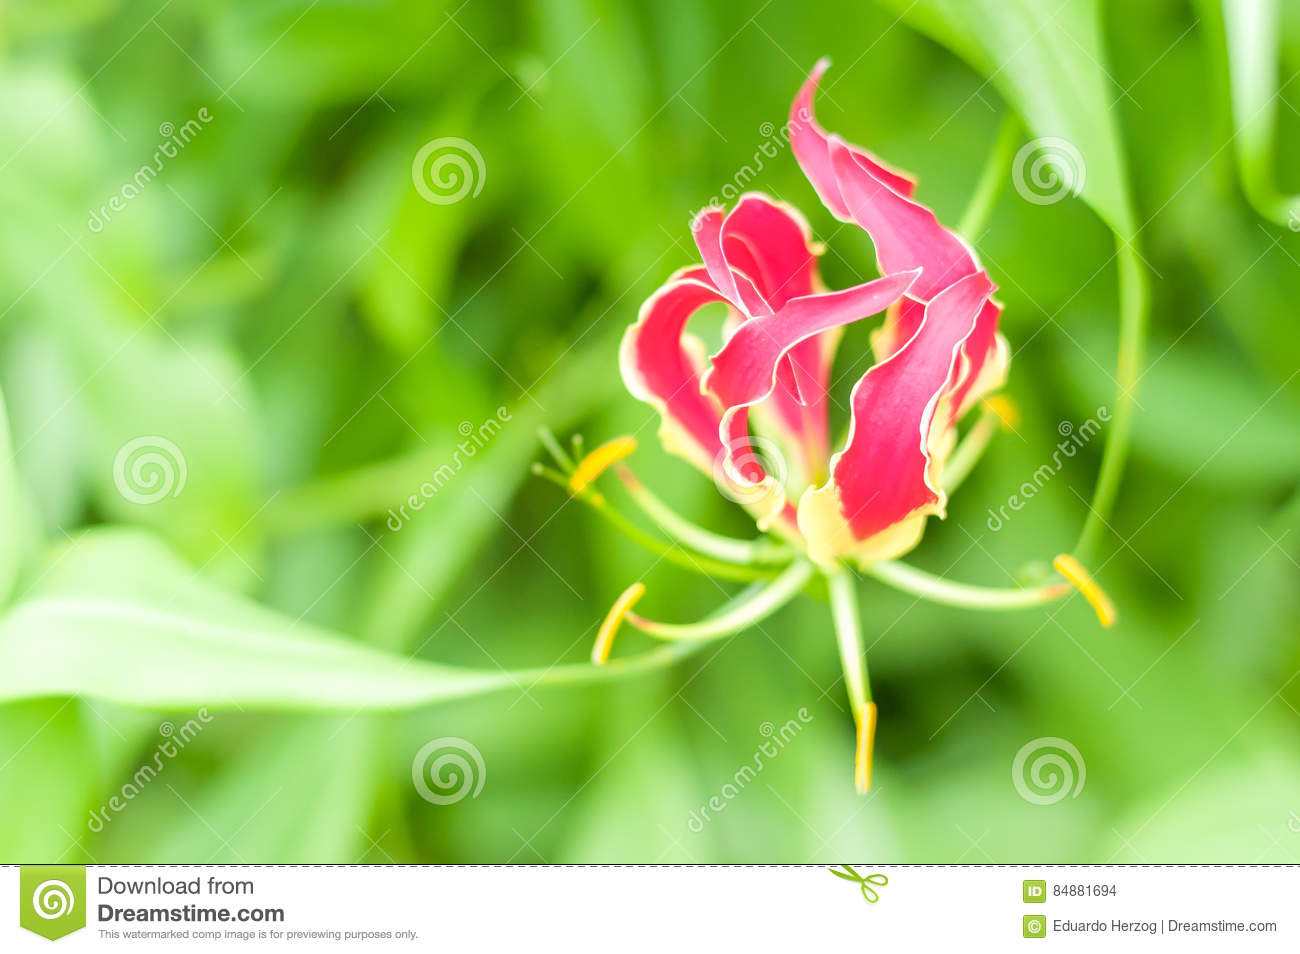 Flame lily flower stock photo image of closeup isolated 84881694 red and yellow x22flame lily x22 flower x28or climbing lily creeping lily glory lily gloriosa lily tiger claw fire lily x29 in brazil izmirmasajfo